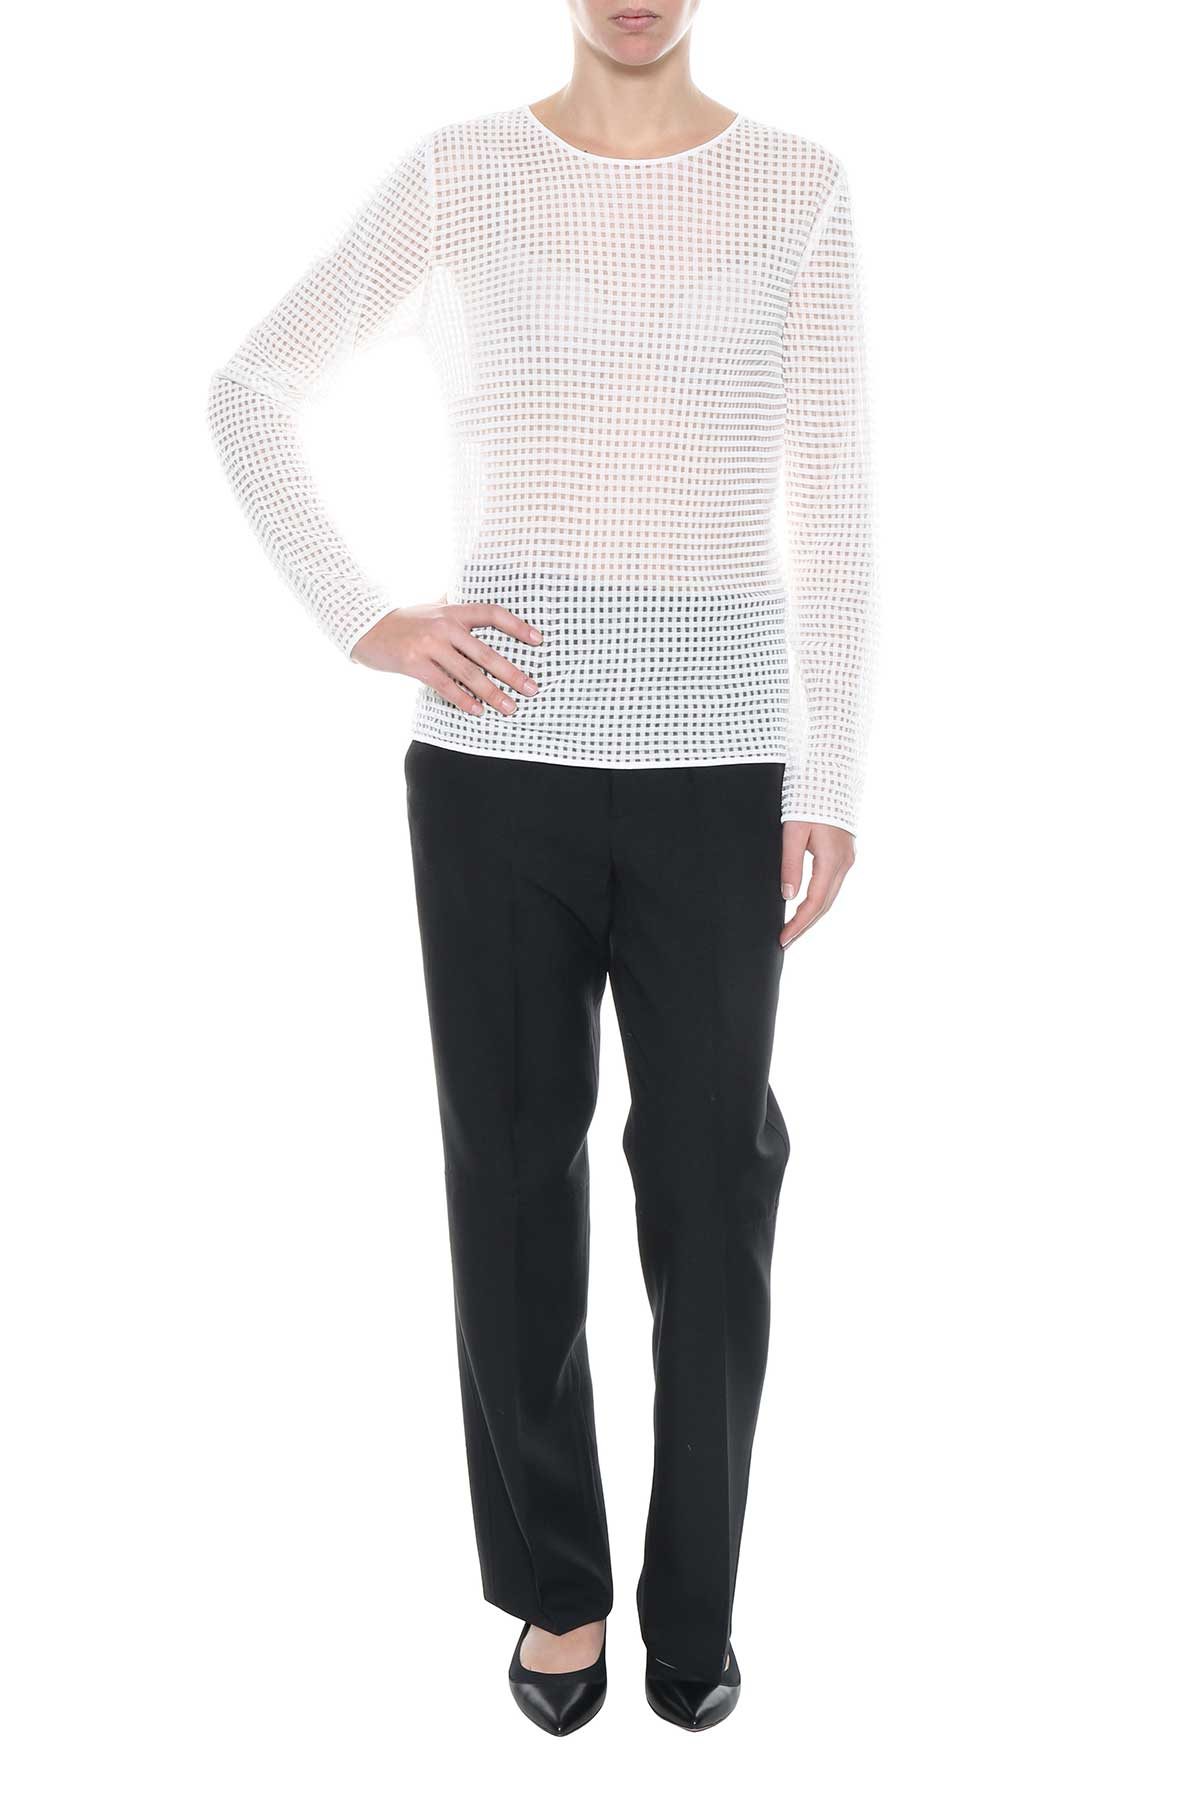 Cedric Charlier Cedric Charlier Checked Top